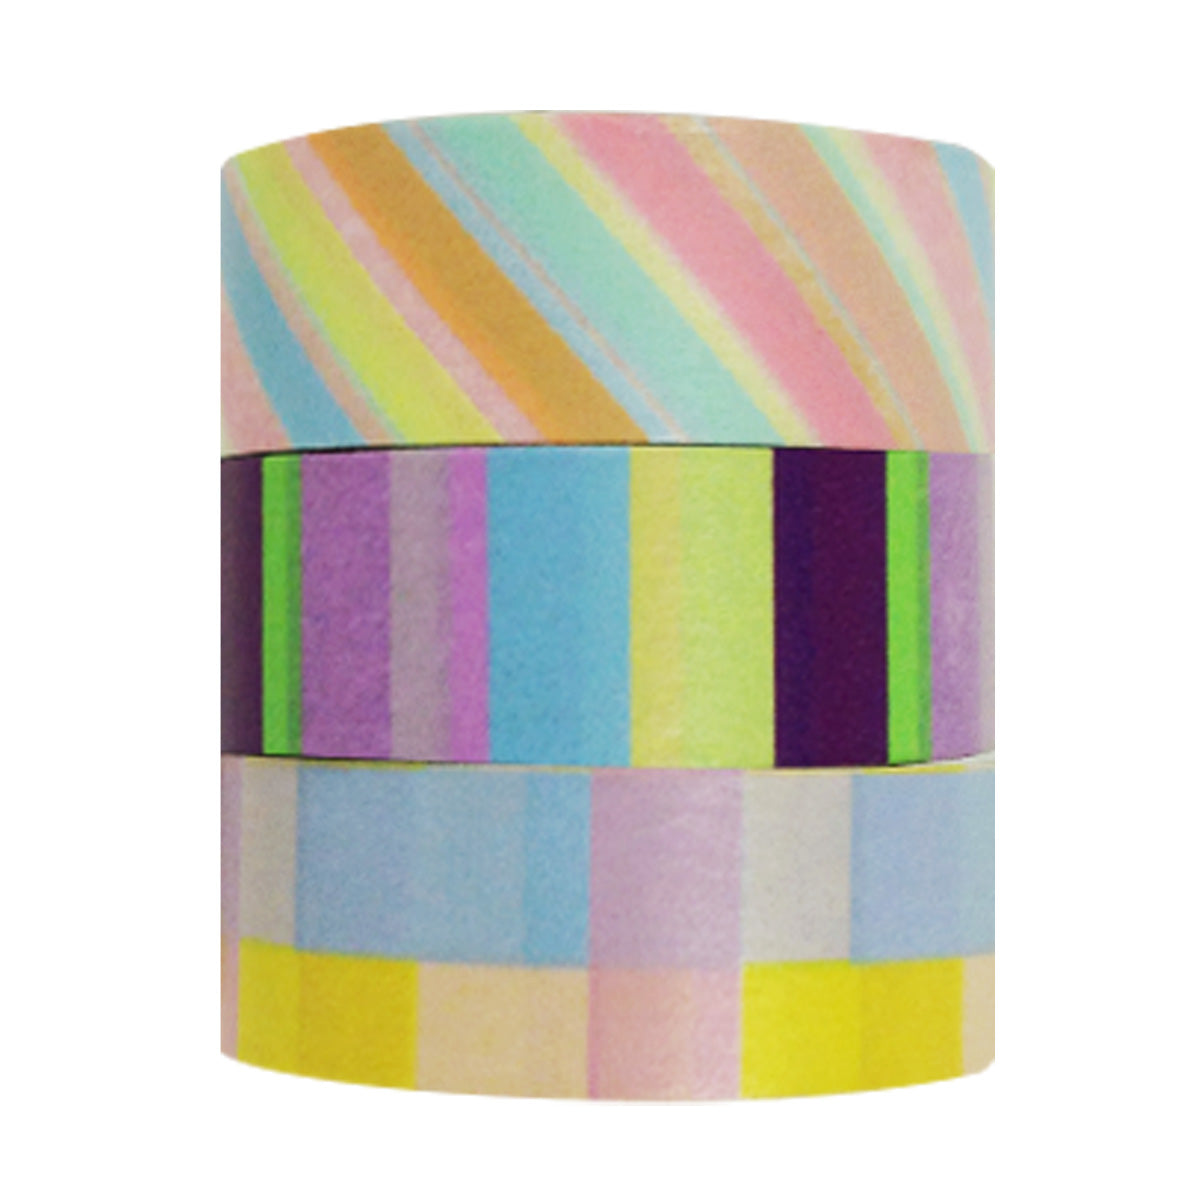 Wrapables Just For Fun Washi Masking Tape (set of 3)